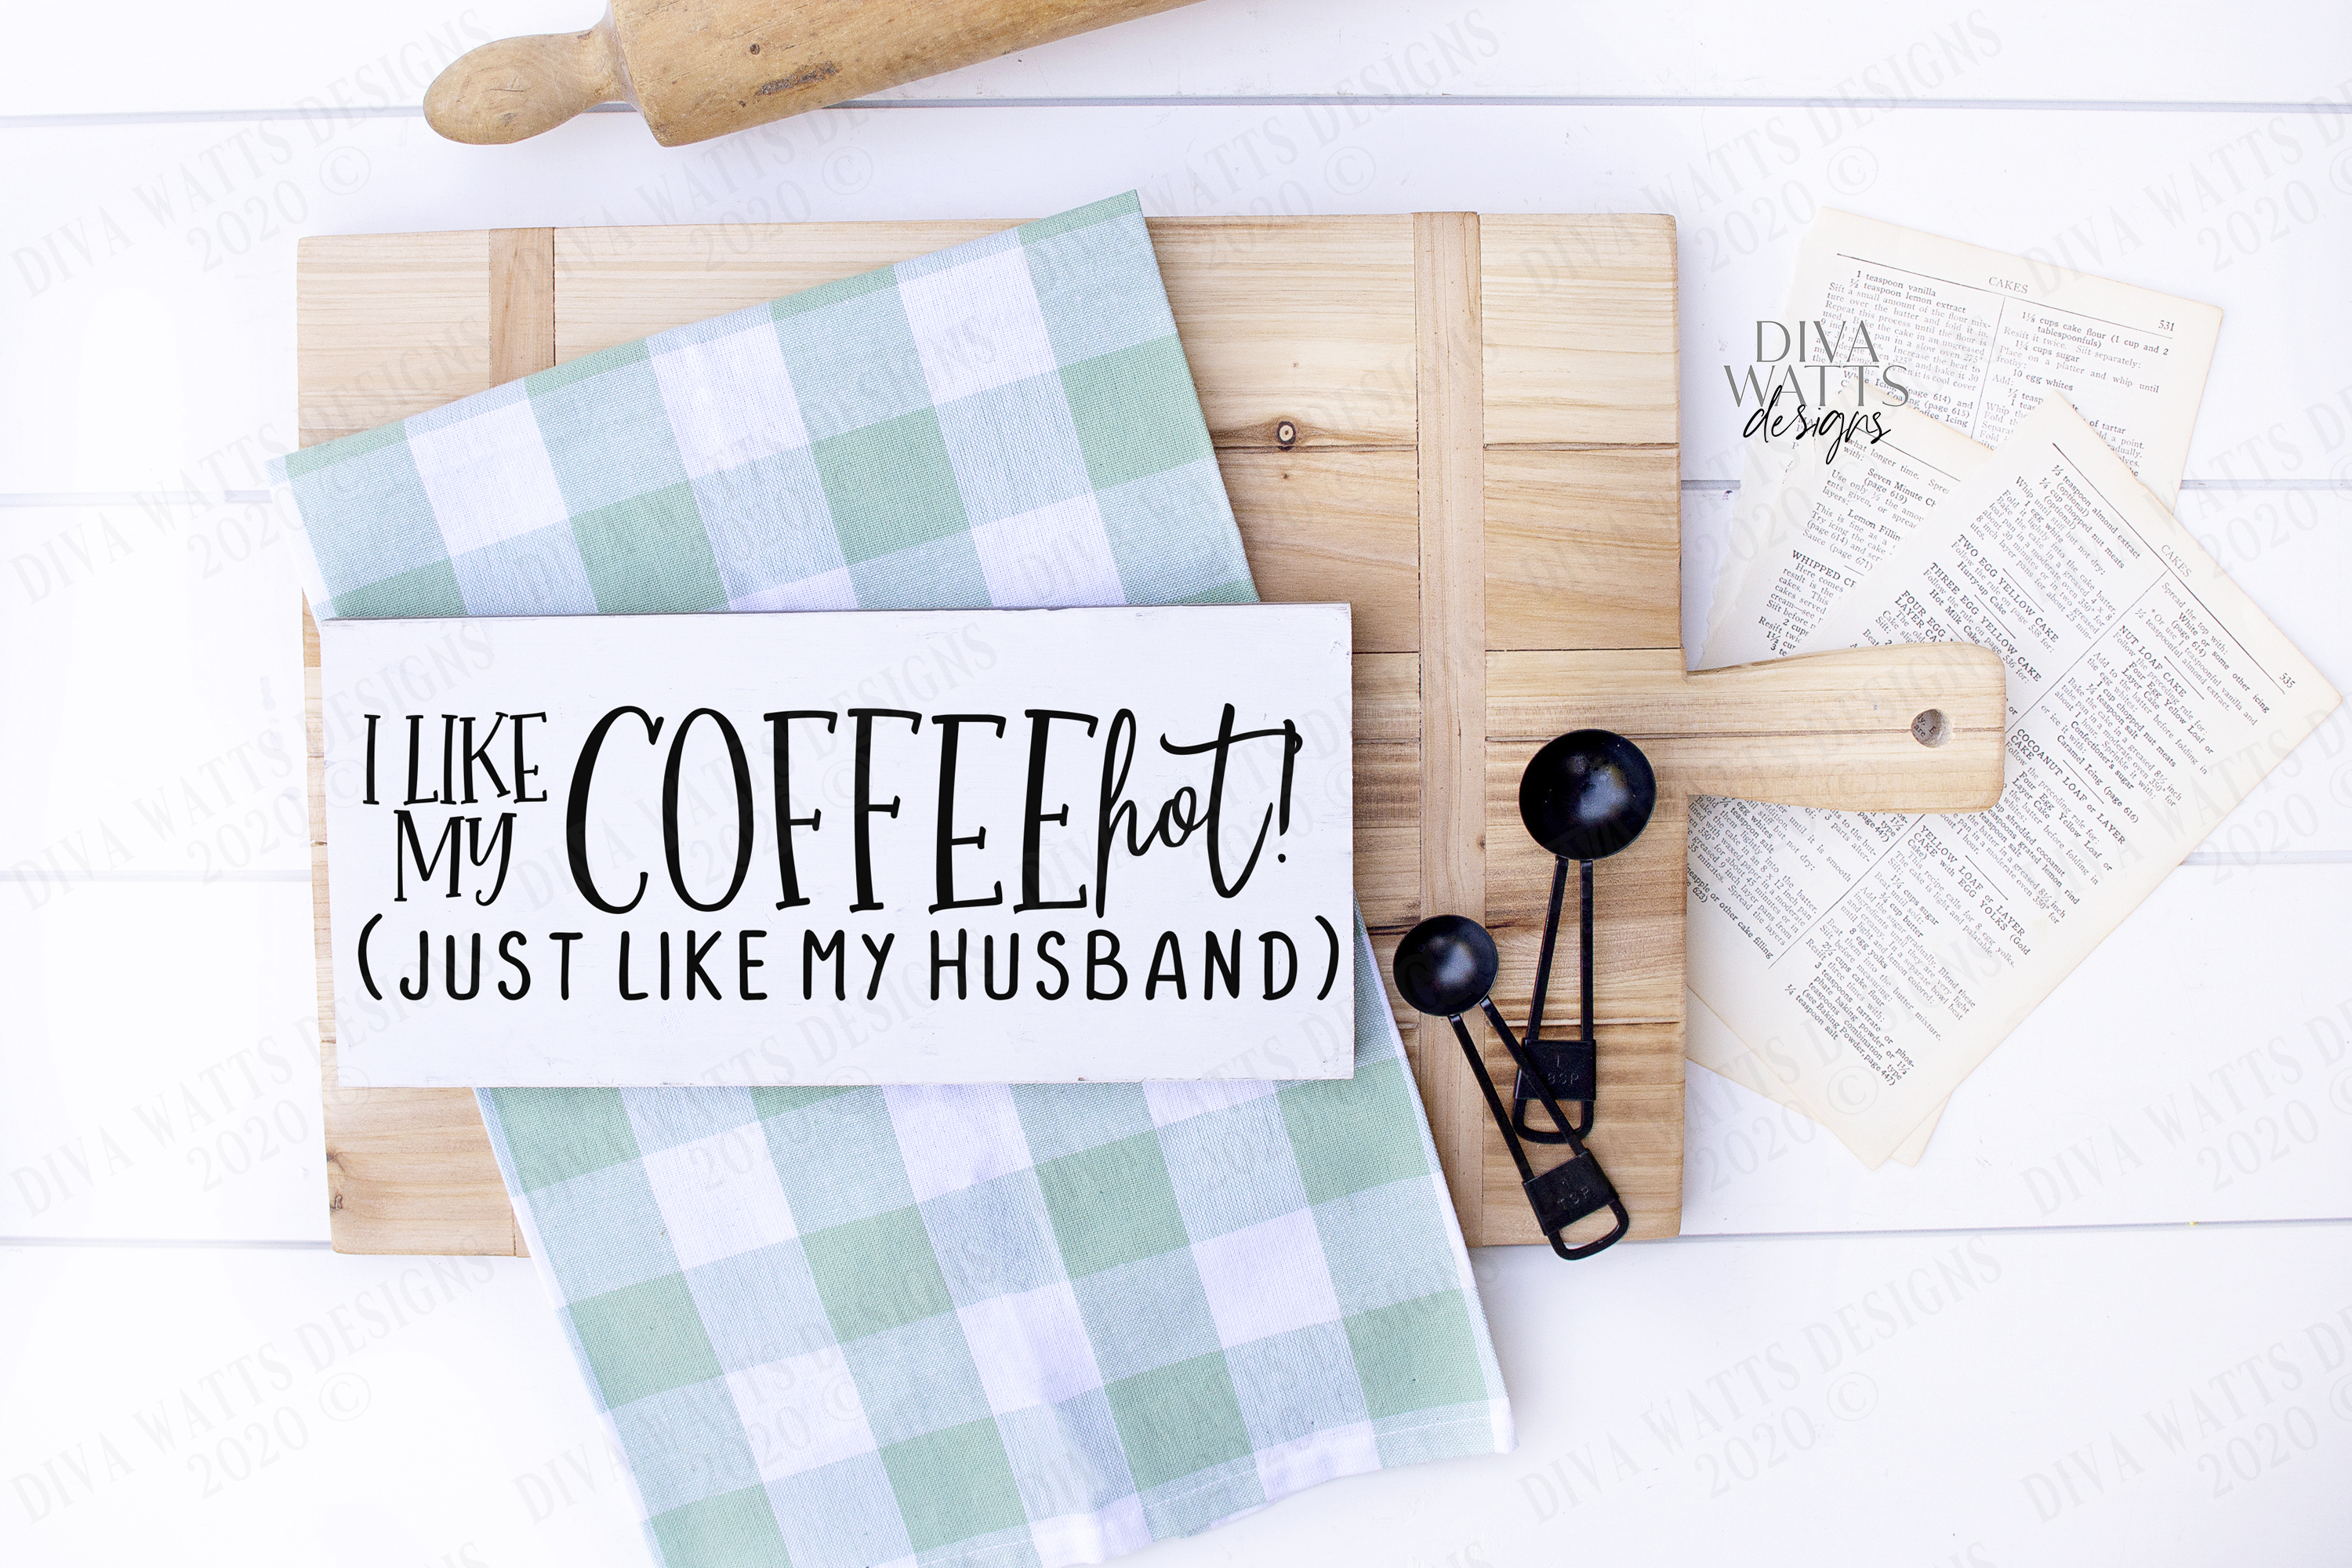 I Like My Coffee HOT! Like My Husband - Coffee Bar Humor SVG example image 1